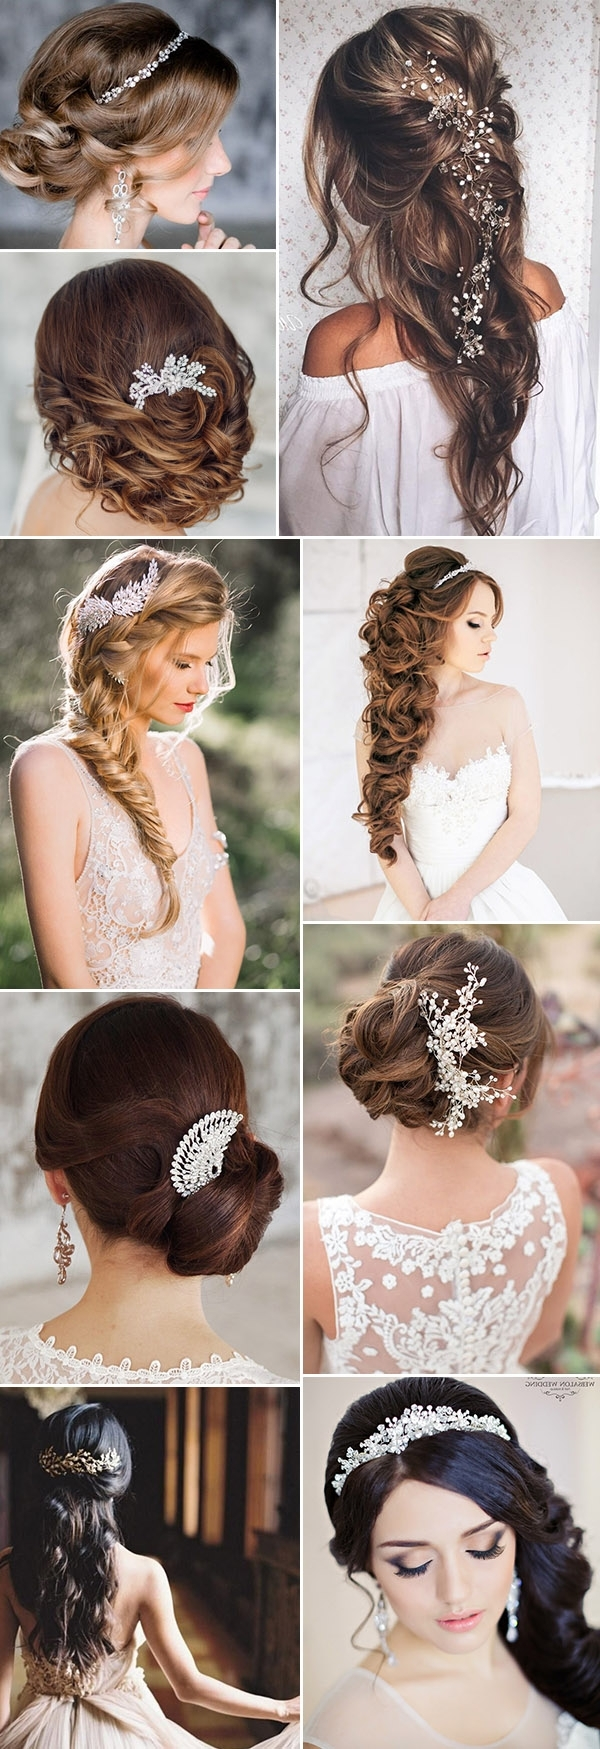 Famous Wedding Hairstyles With Headpiece Inside Top 20 Bridal Headpieces For Your Wedding Hairstyles (View 8 of 15)